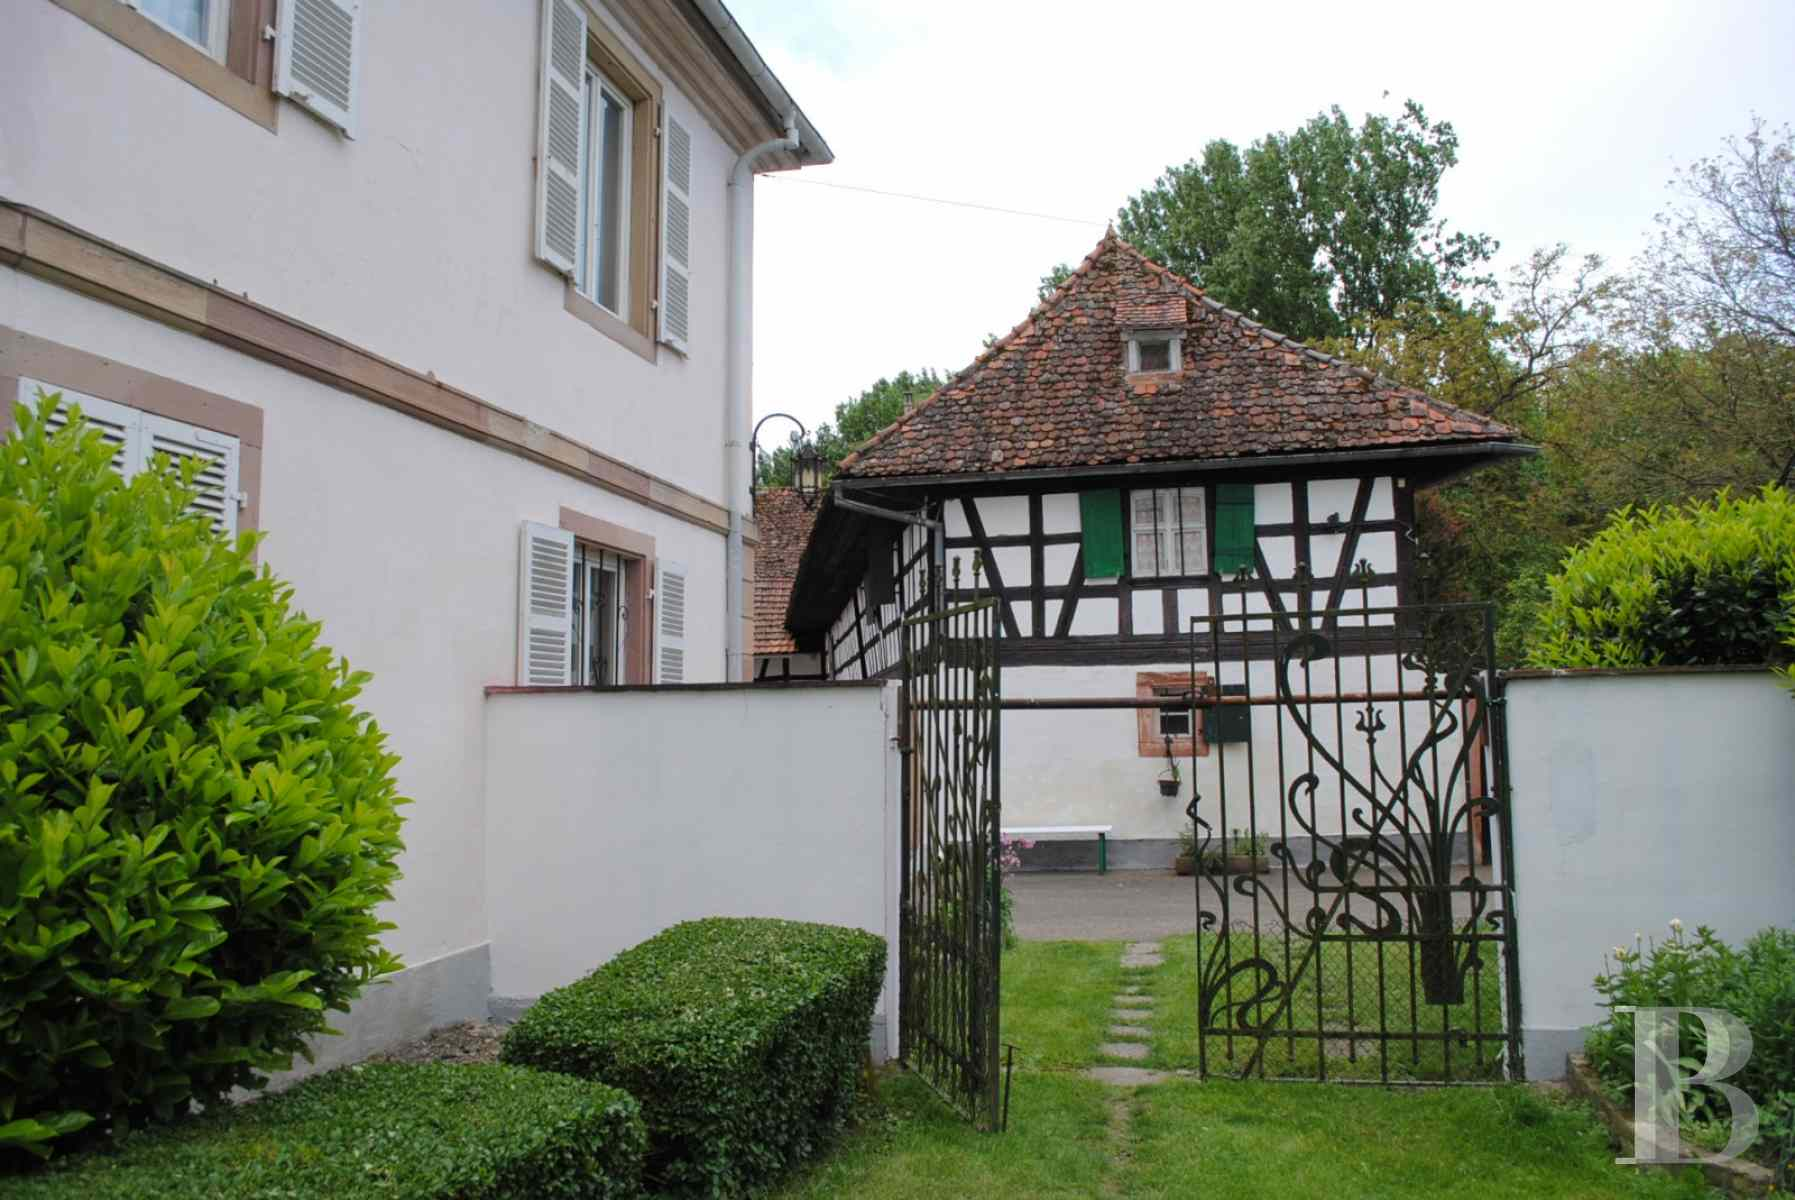 character properties France alsace strasbourg large - 6 zoom